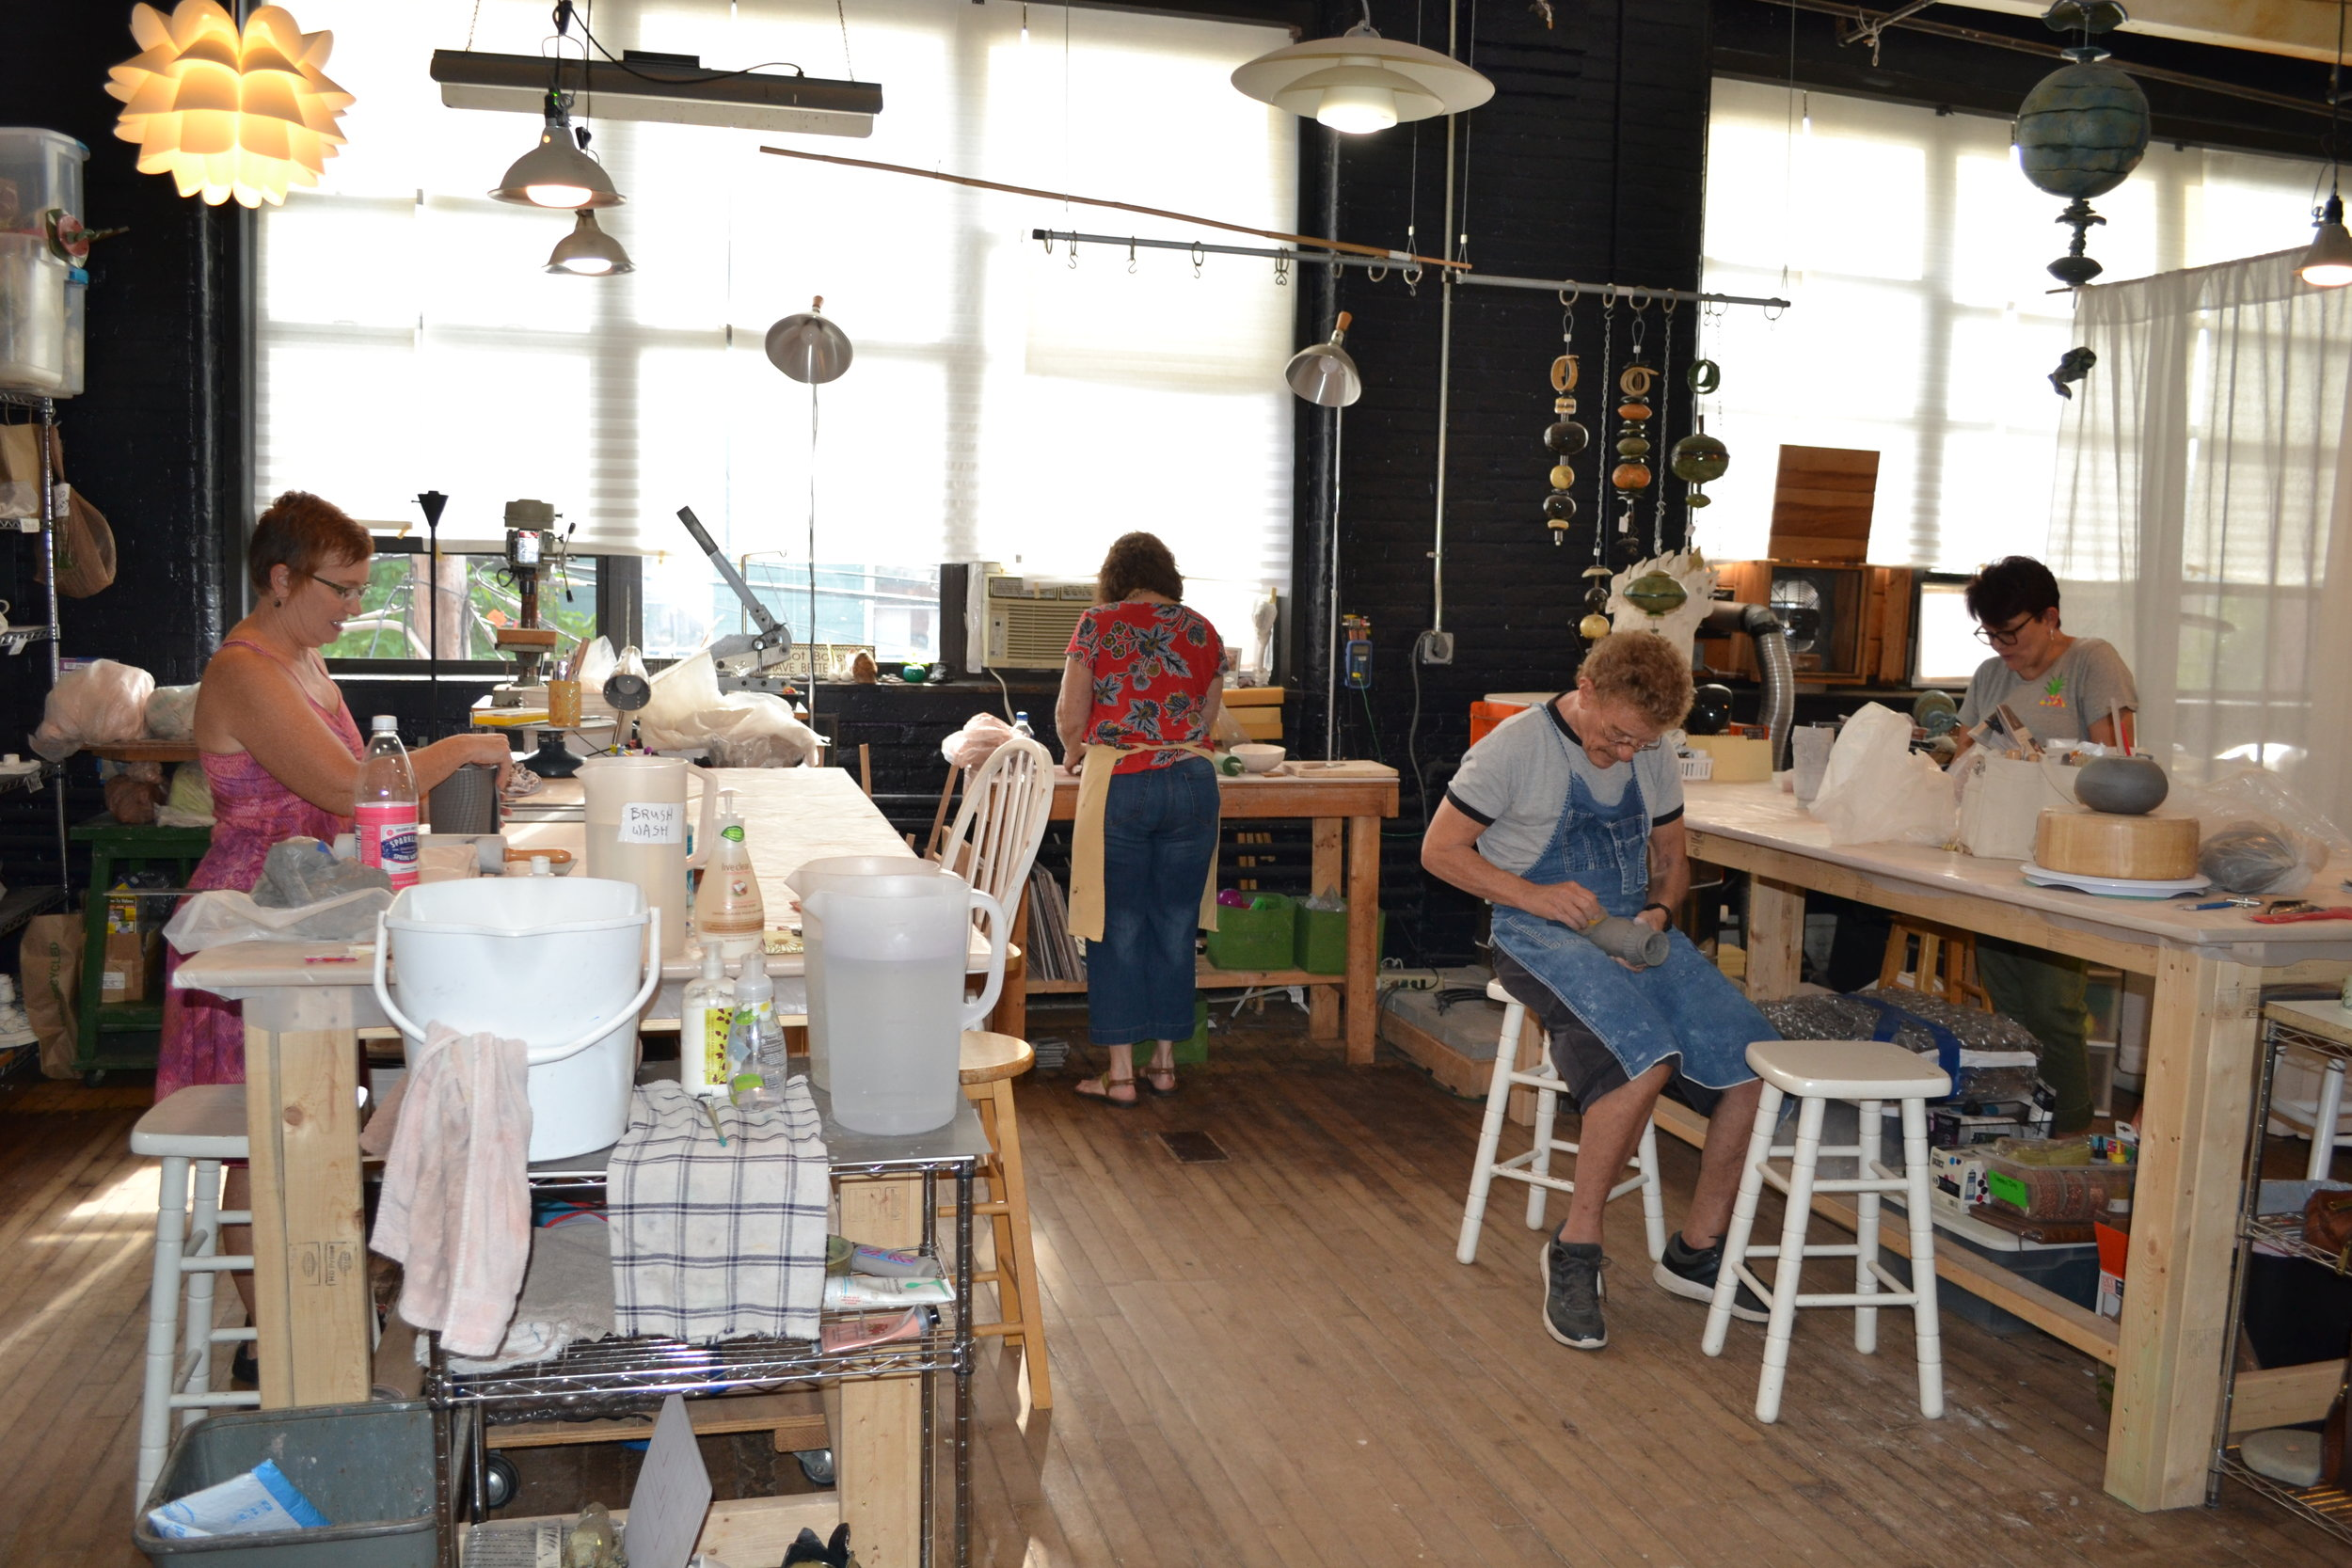 Wednesday Full Day Class at The Studio Rochester.